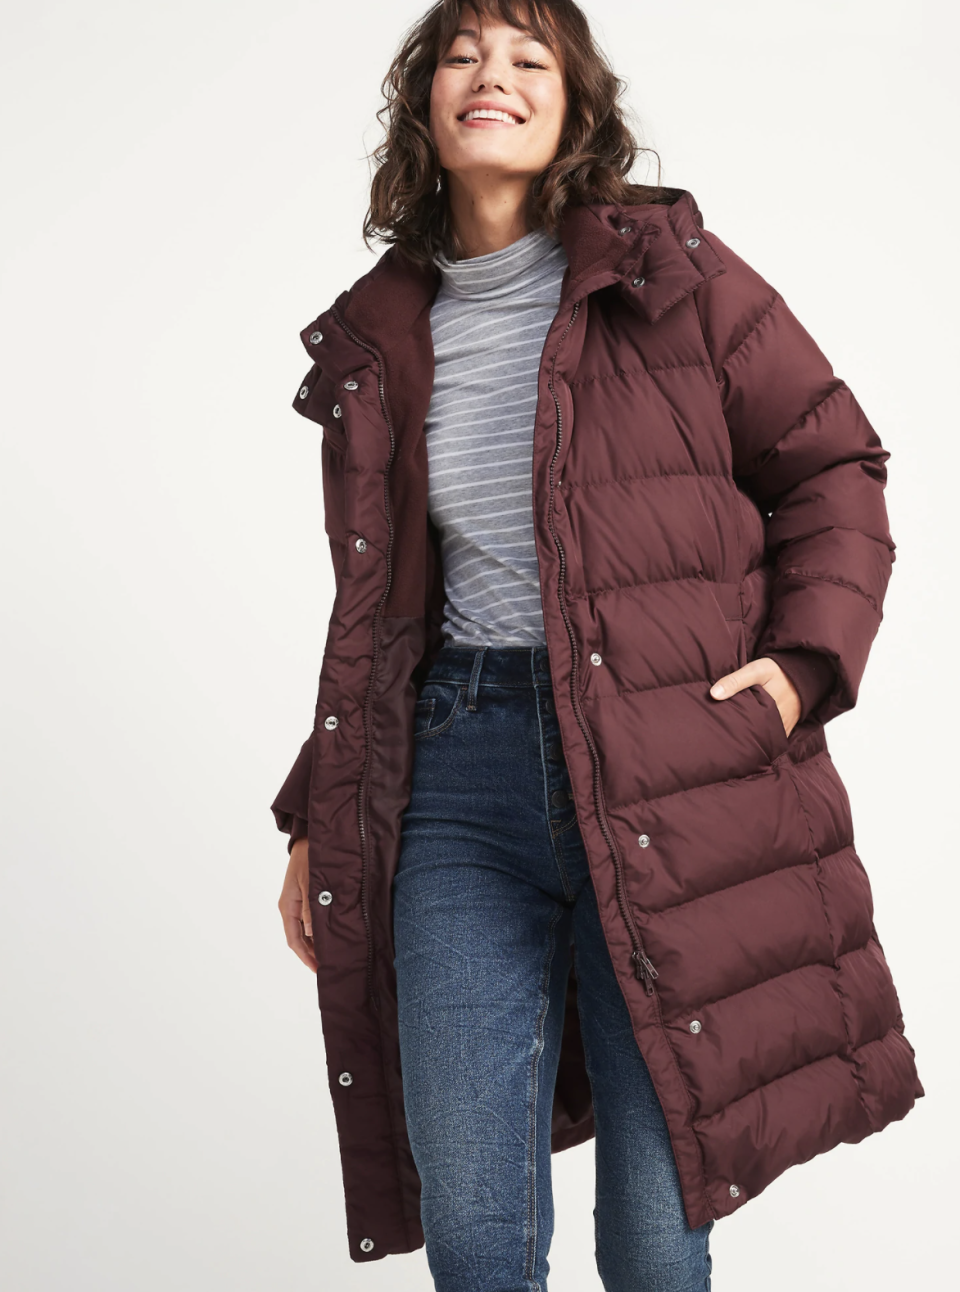 Long Hooded Down-Fill Puffer Coat for Women - on sale at Old Navy, $75 (originally $150).